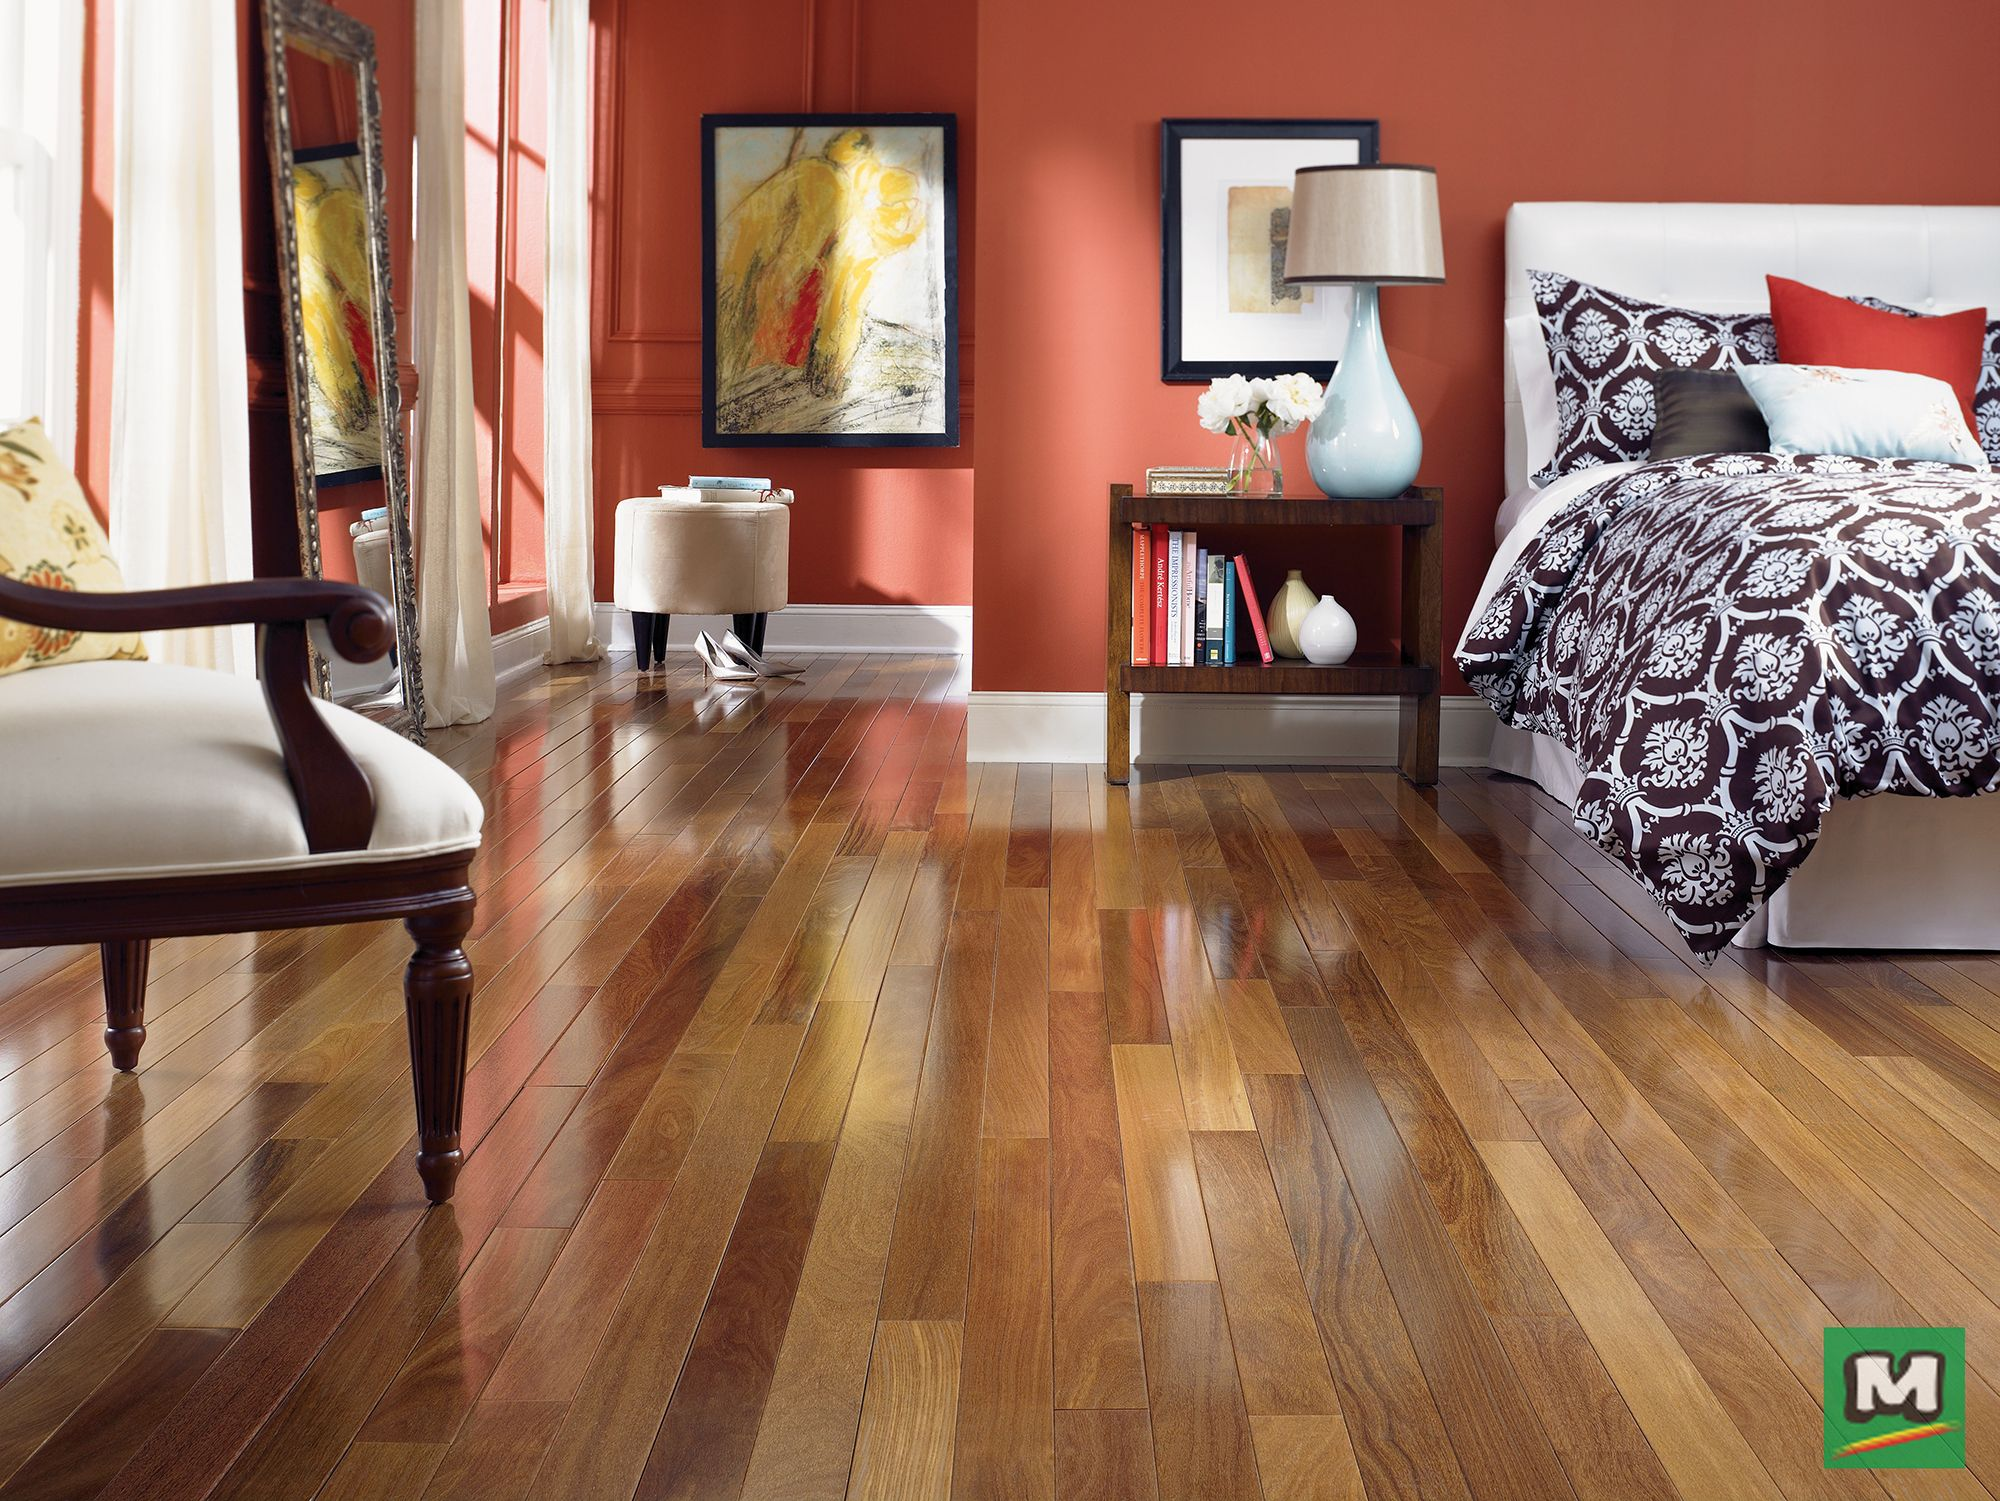 With Its Extended 7 Foot Random Board Lengths Great Lakes 1 2 Inch Cumaru Natural Engineered Hardwood Flooring Will Br Flooring Hardwood Floors Teak Flooring